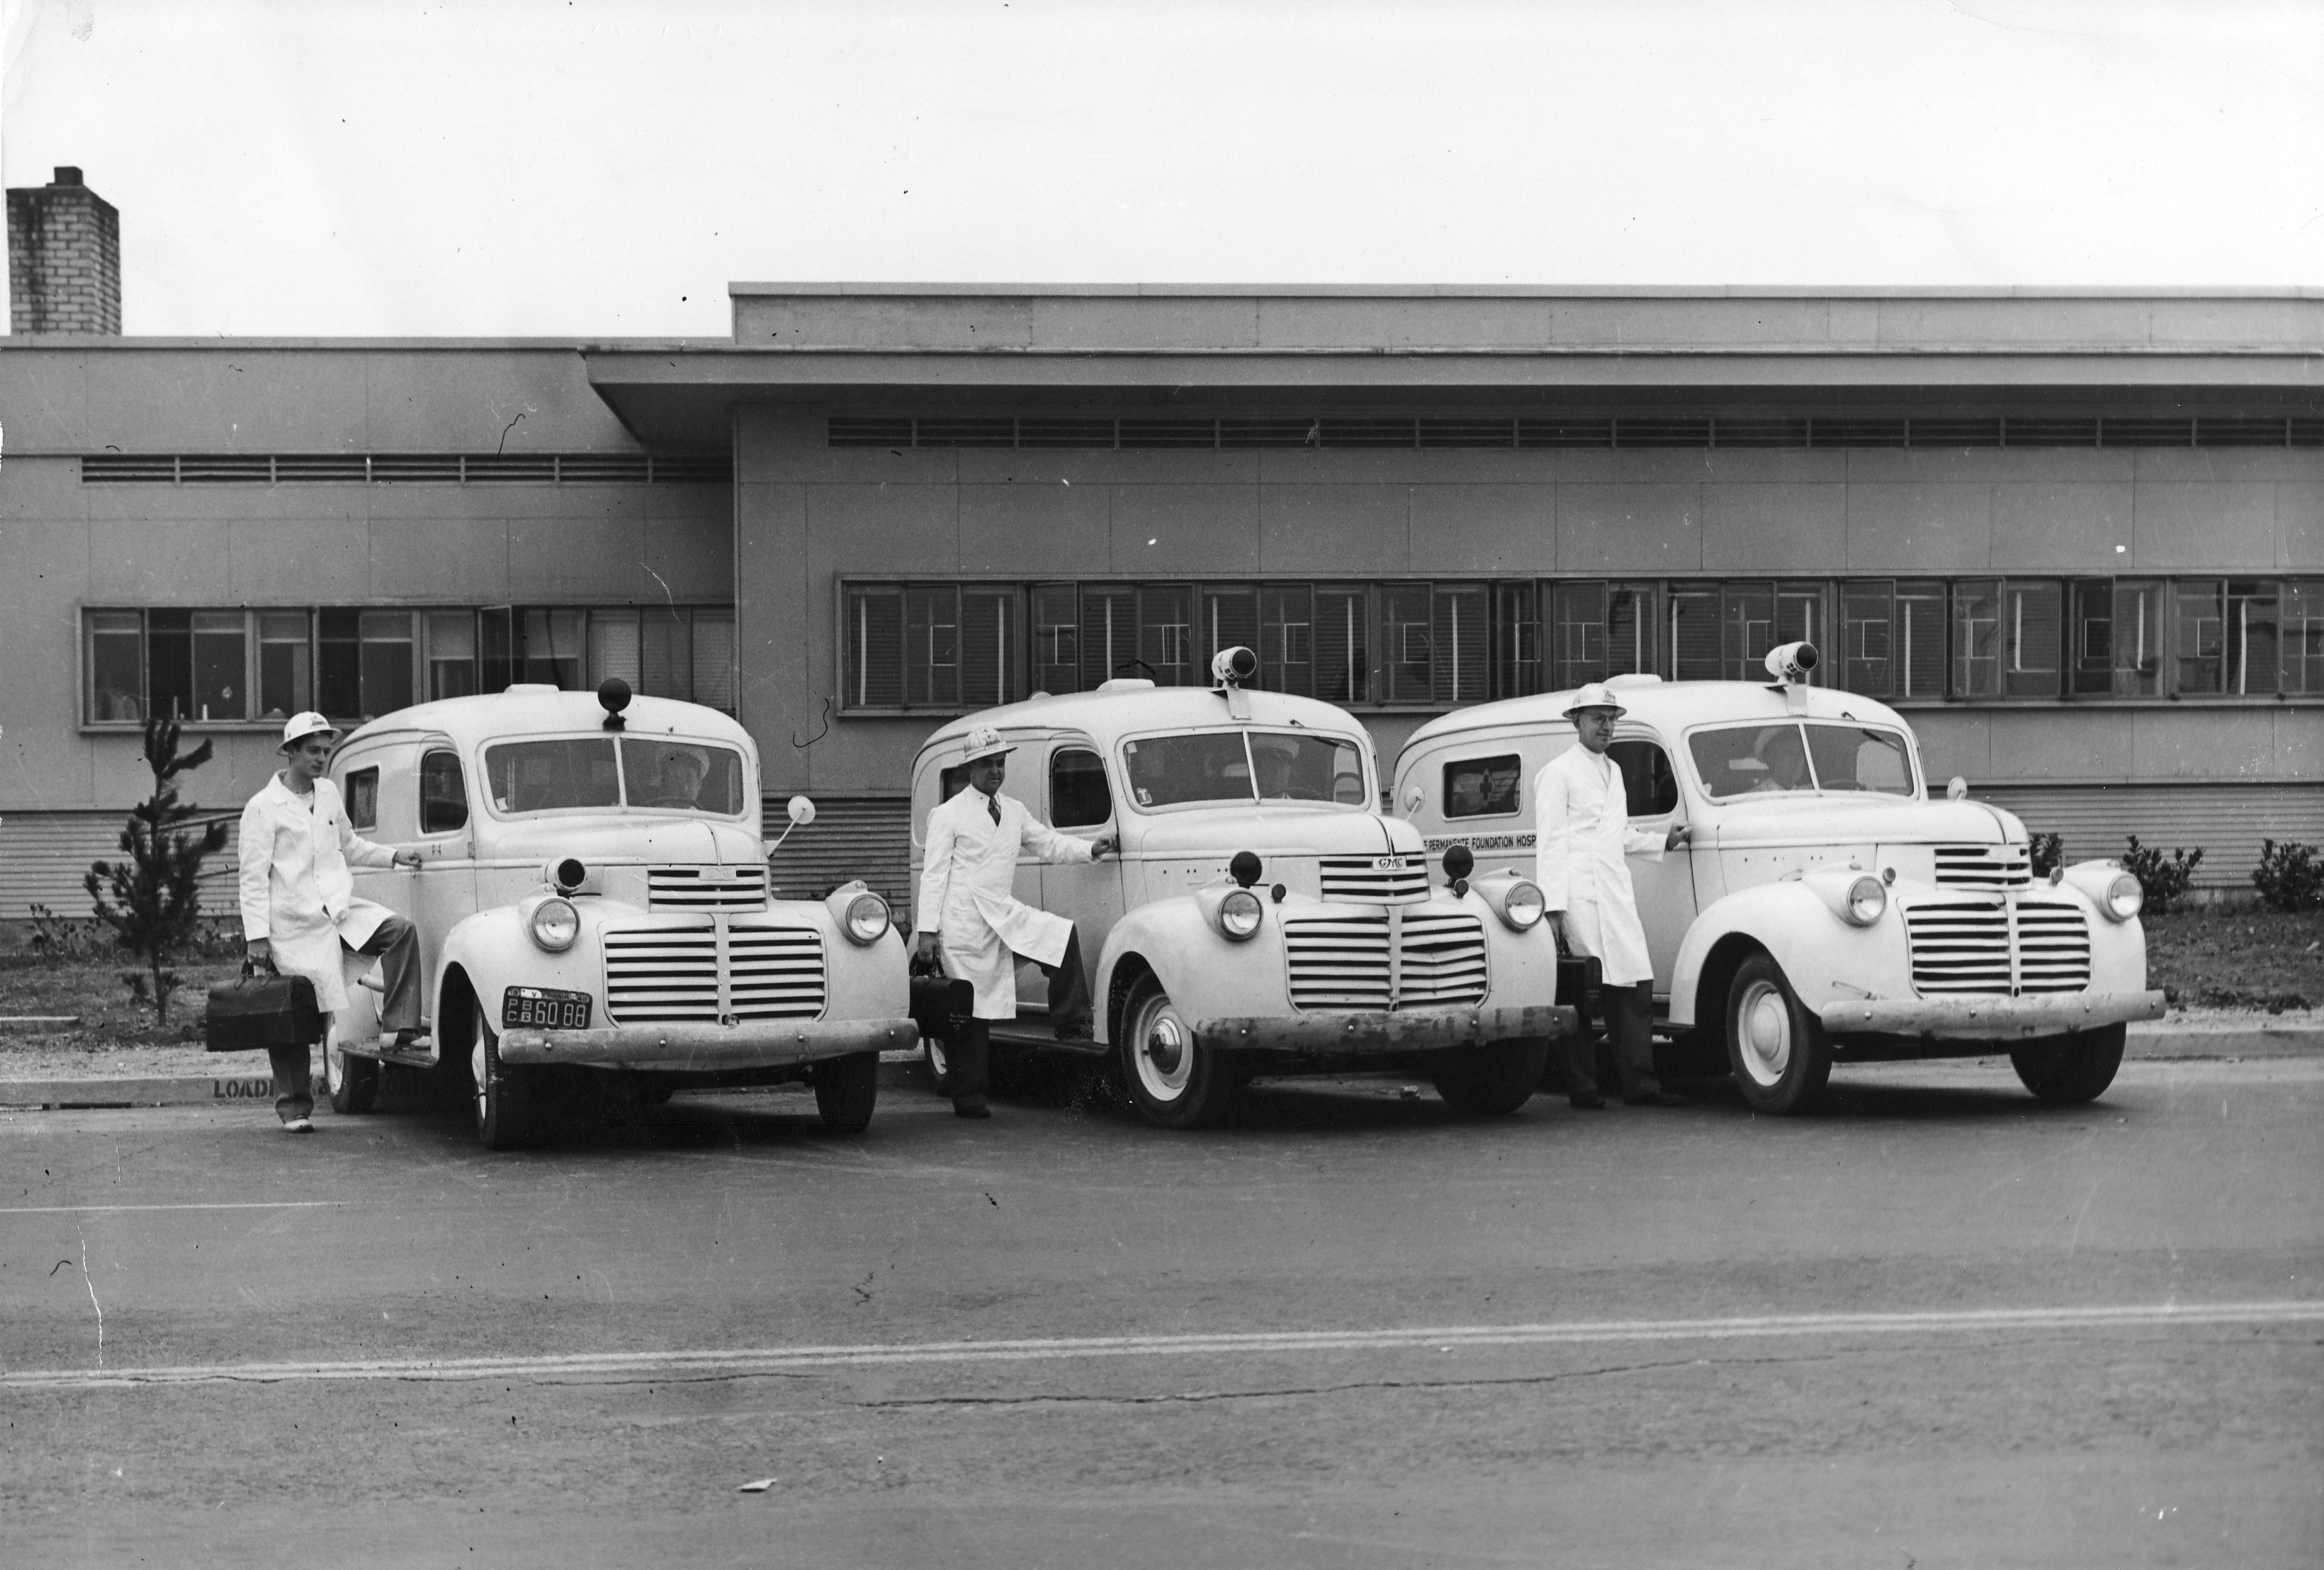 1946 Gmc Ambulance Fire Trucks Old Classic Cars